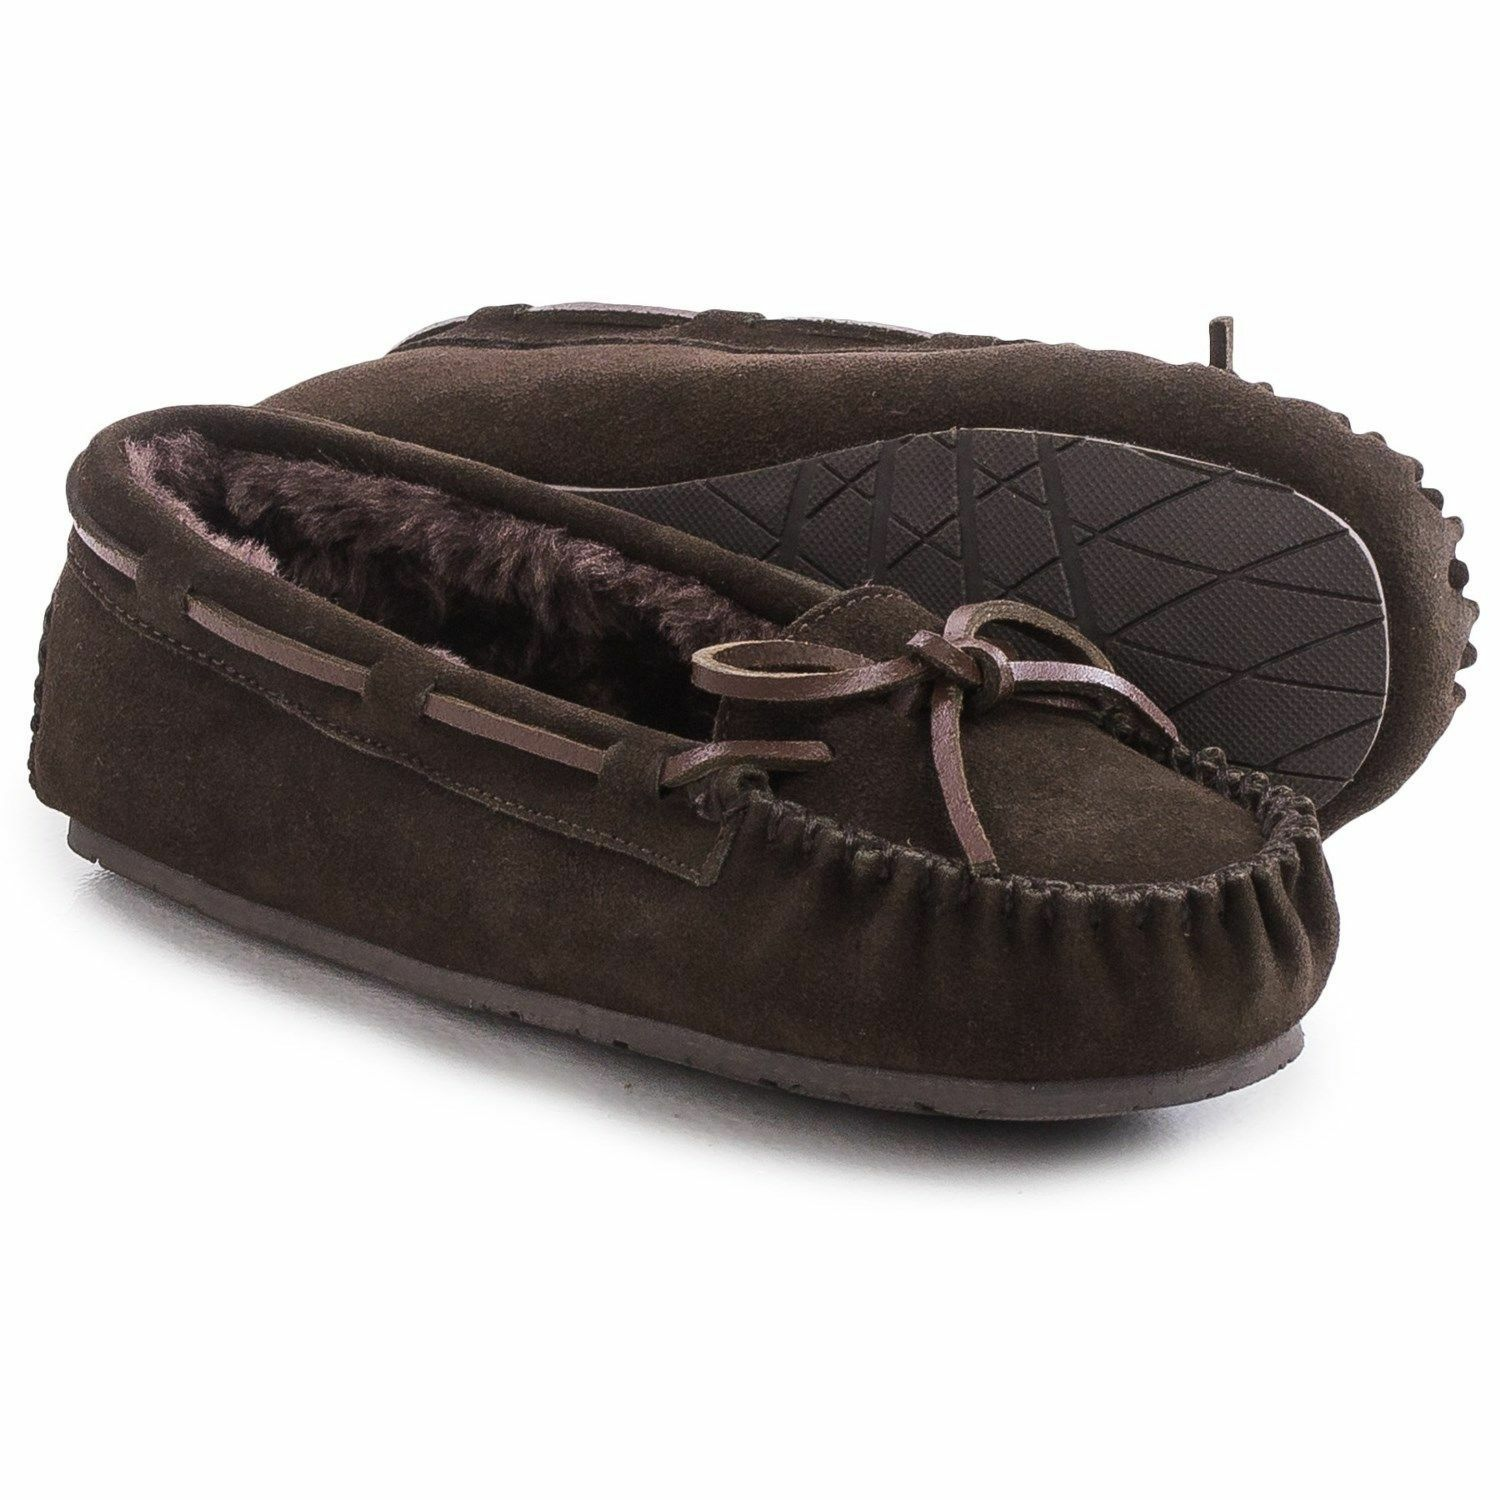 Clarks Indoor/Outdoor Women Brown Suede Bow Plush Lined Moccasin Slippers 8,9,10